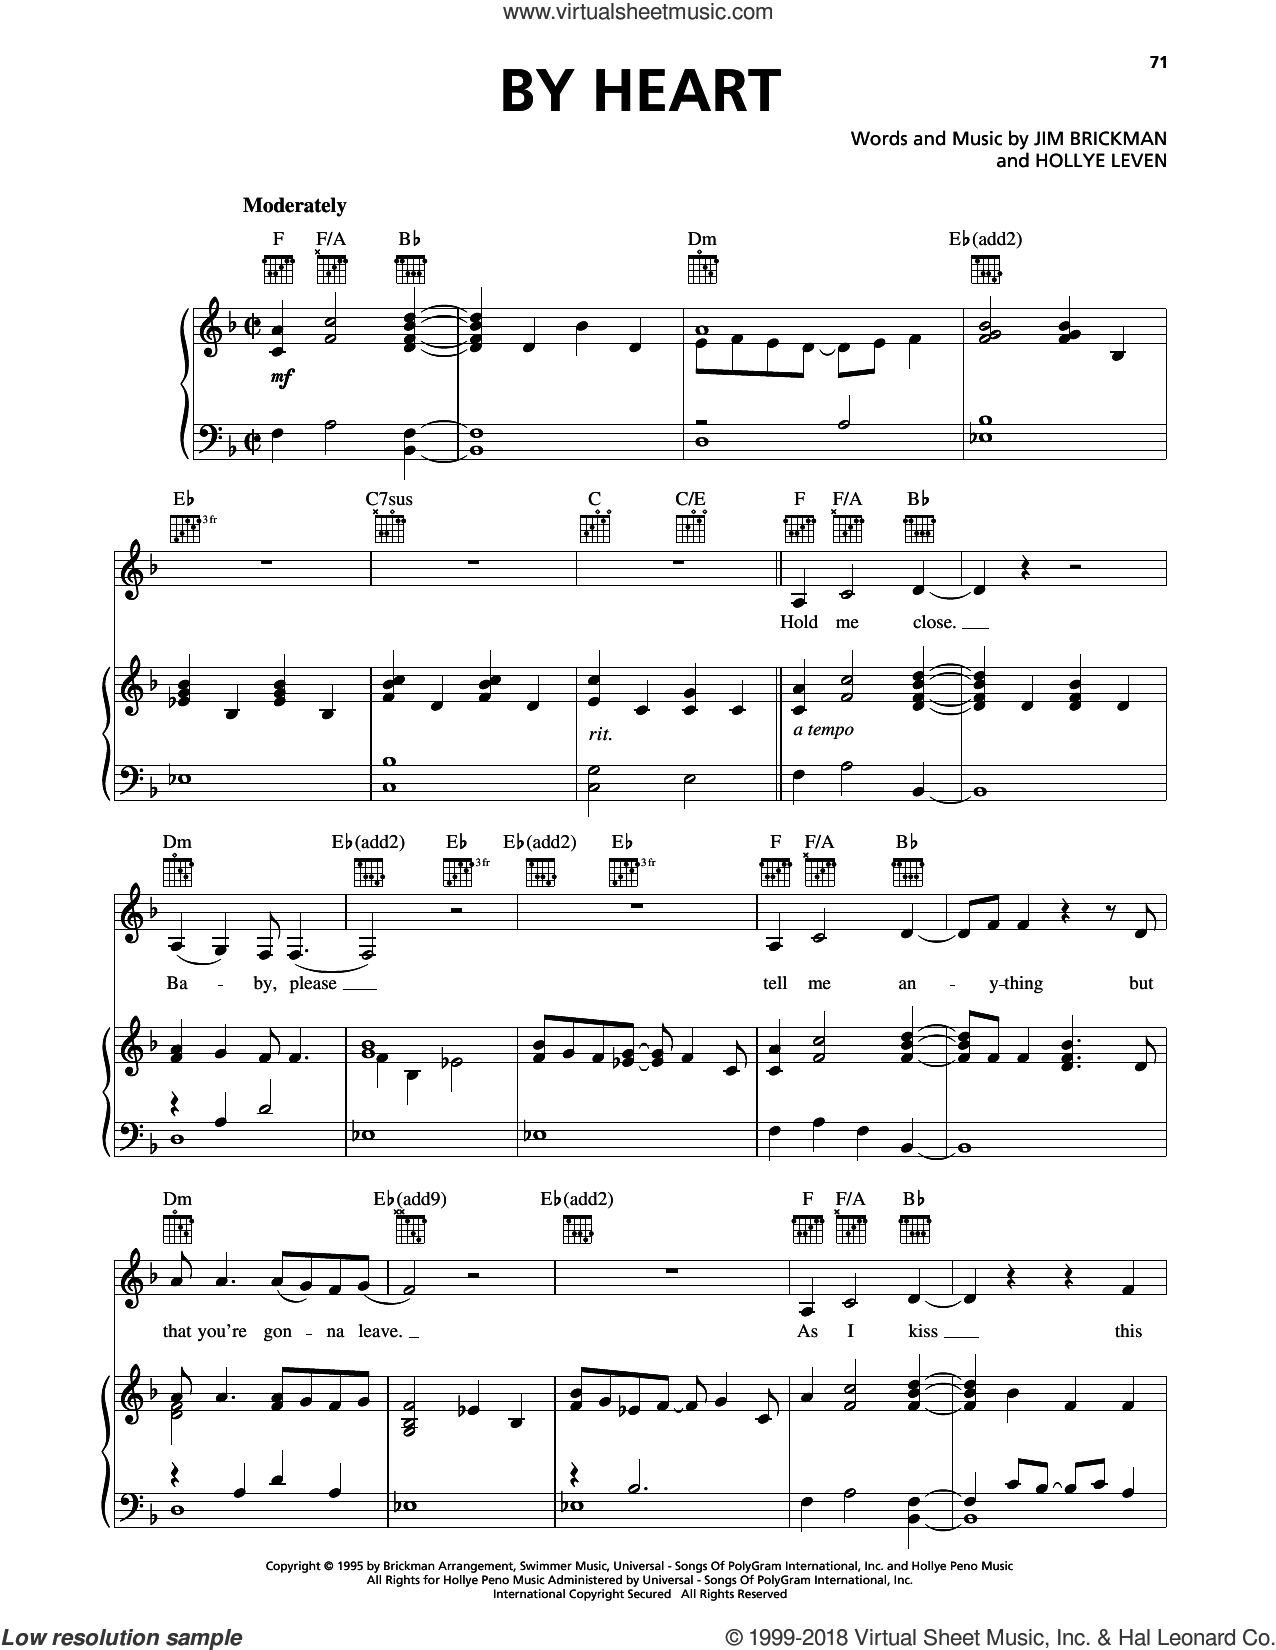 By Heart (feat. Anne Cochran) sheet music for voice, piano or guitar by Jim Brickman and Hollye Leven, intermediate skill level